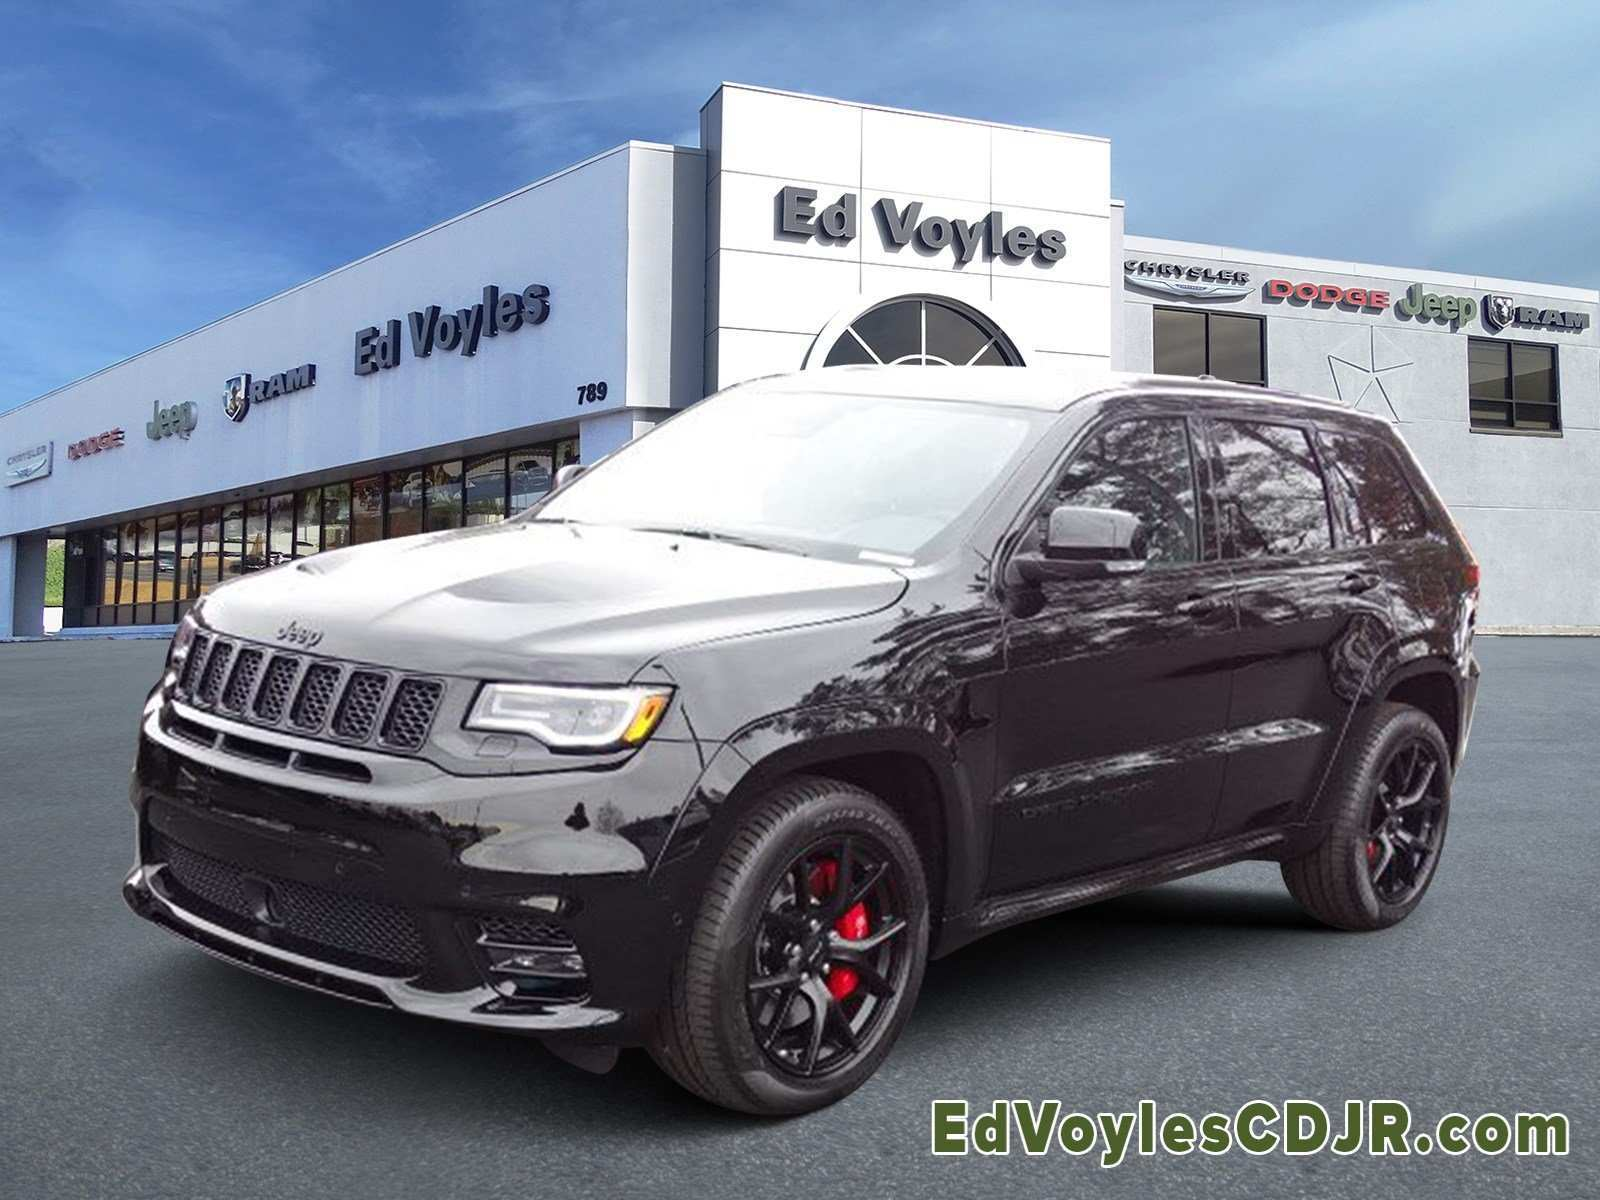 29 All New 2019 Jeep Grand Cherokee Srt8 Research New